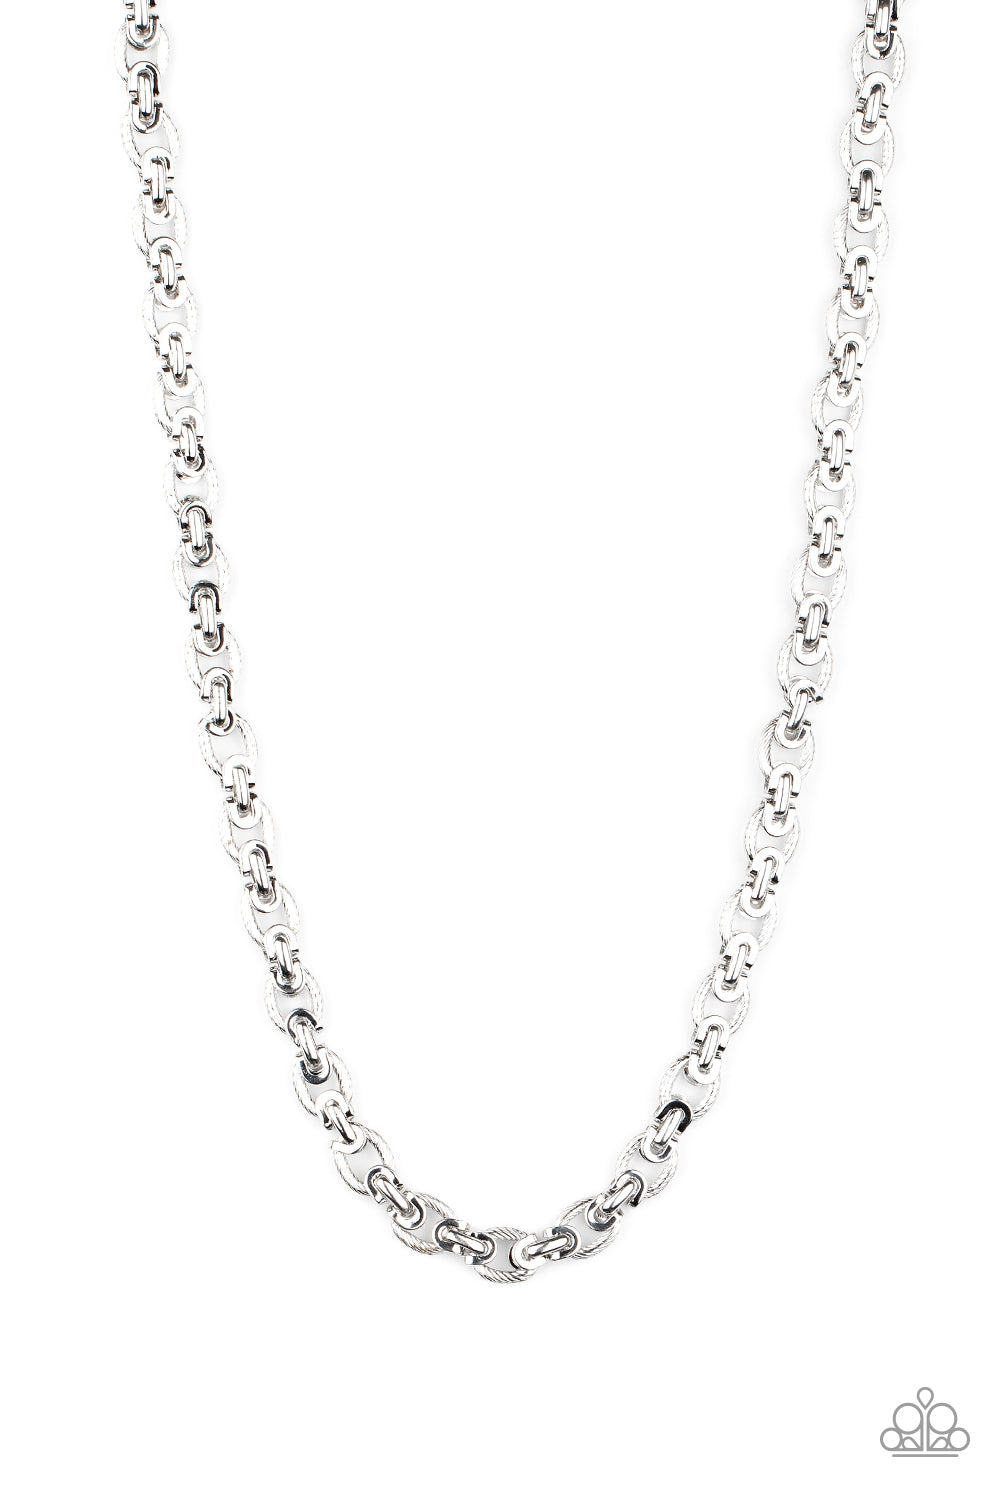 Grit and Gridiron - Silver Necklace